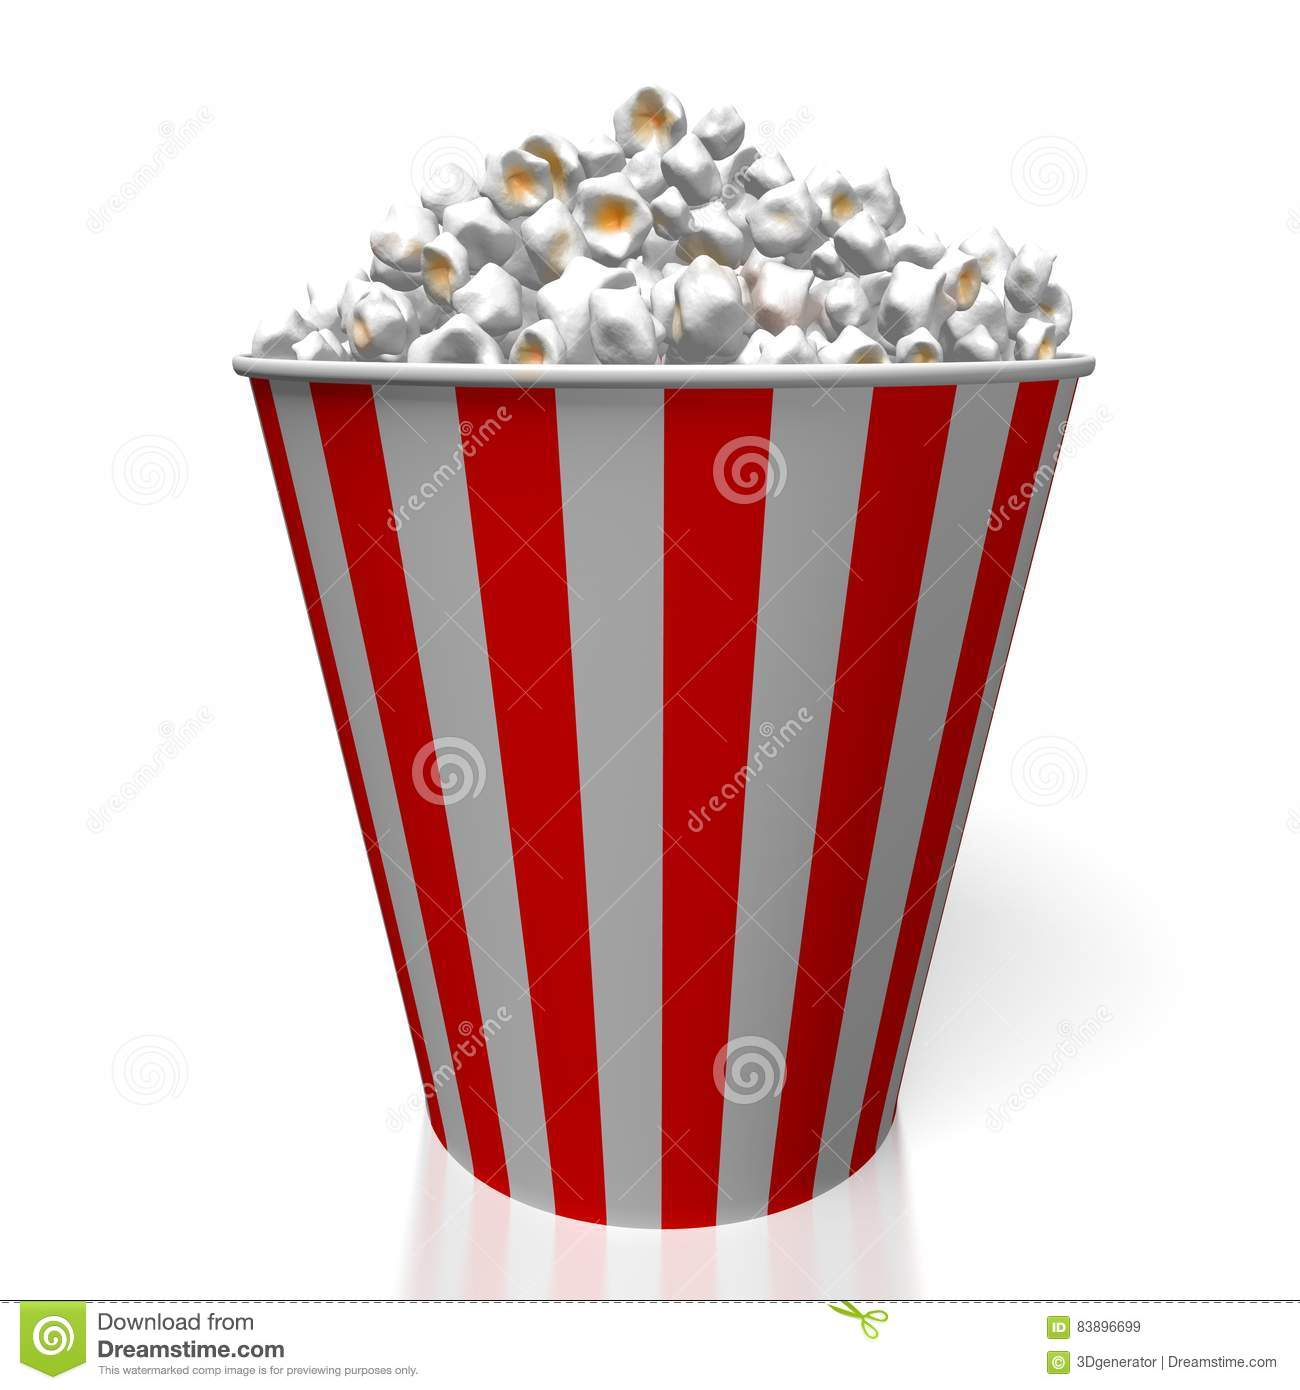 3D popcorn stock illustration  Illustration of concept - 83896699